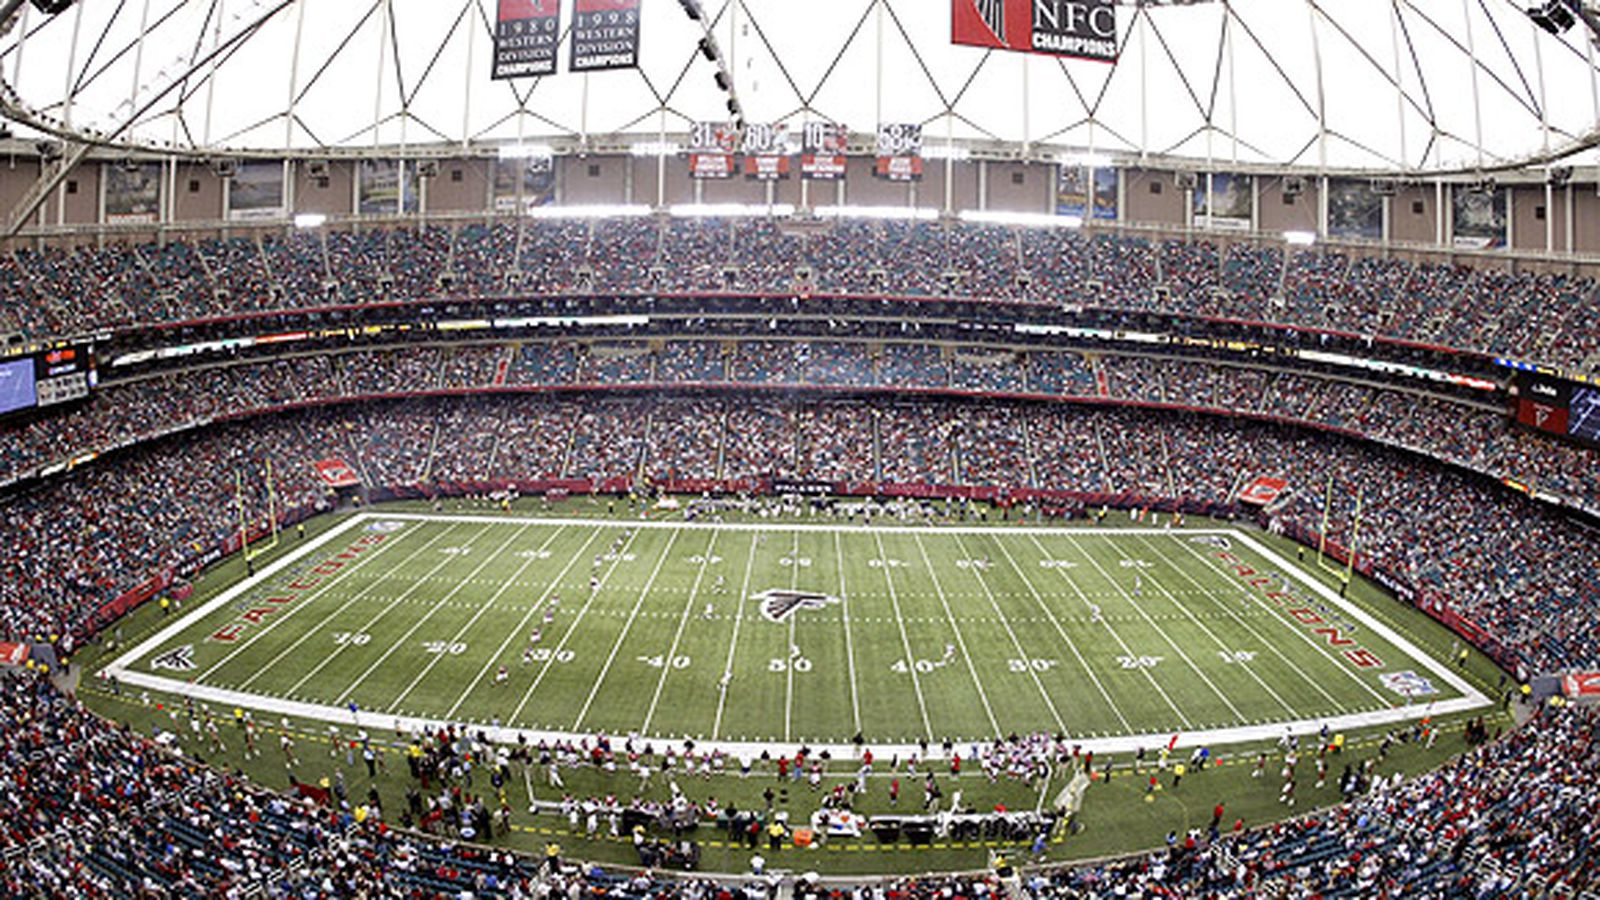 Tracing atlanta 39 s limited checkered super bowl legacy for Mercedes benz stadium seats for sale